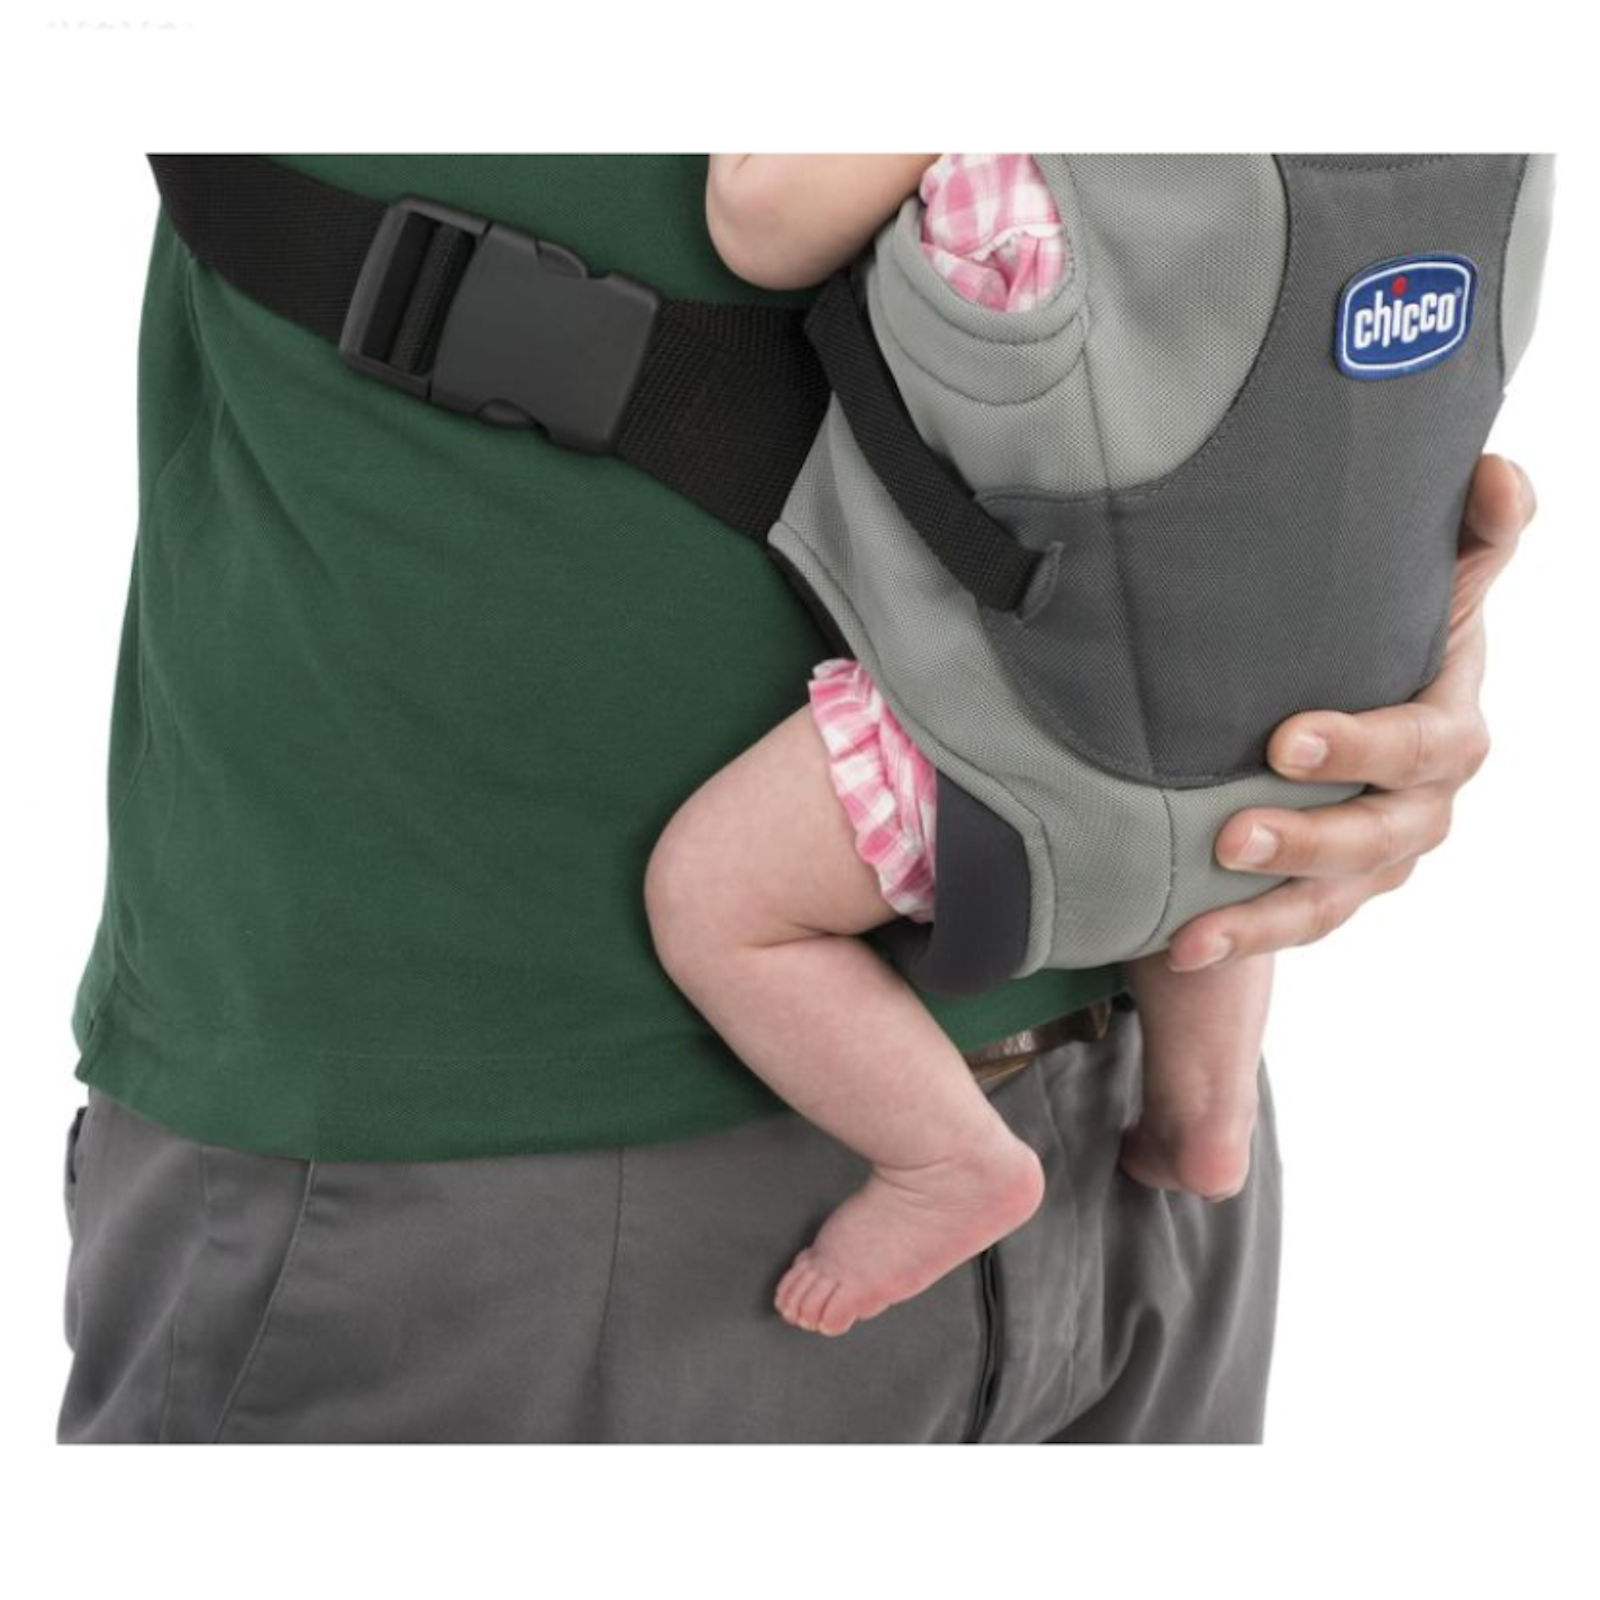 Chicco Deluxe Go Baby Carrier - Moon   Buy at Online4baby 73c019f680d